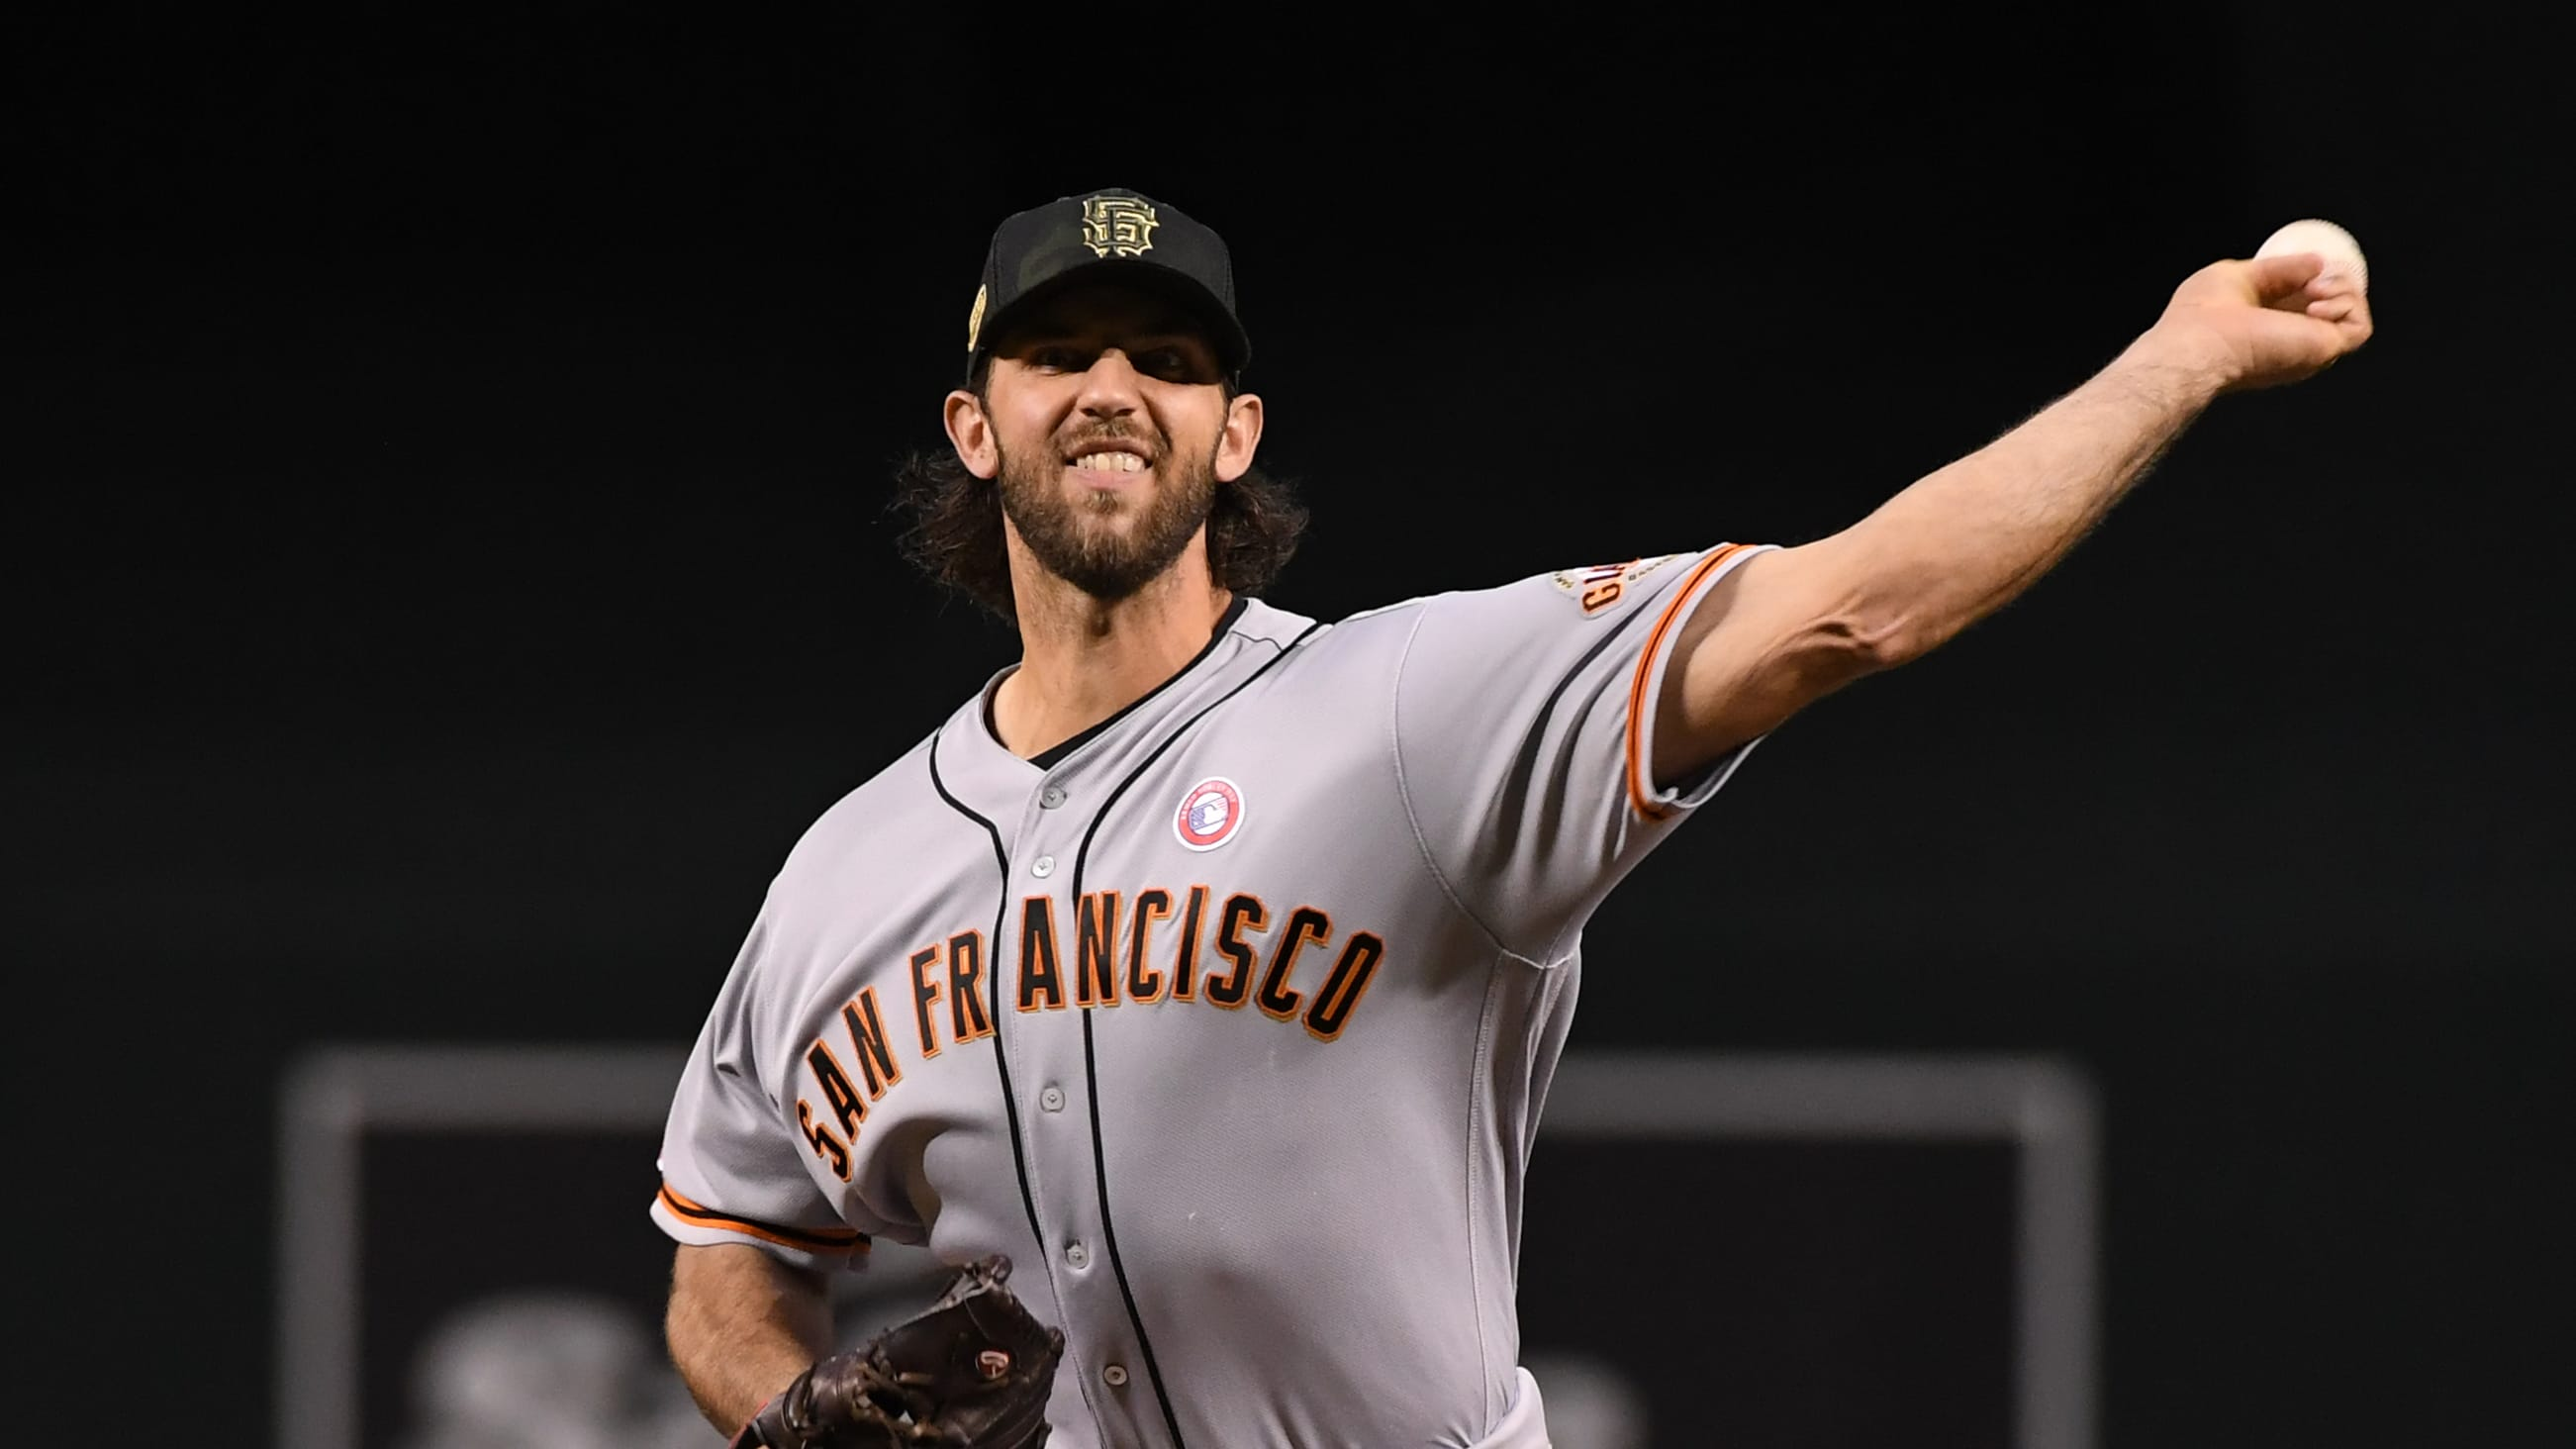 PHOENIX, ARIZONA - MAY 18:  Madison Bumgarner #40 of the San Francisco Giants delivers a first inning warm up pitch against the Arizona Diamondbacks at Chase Field on May 18, 2019 in Phoenix, Arizona. (Photo by Norm Hall/Getty Images)